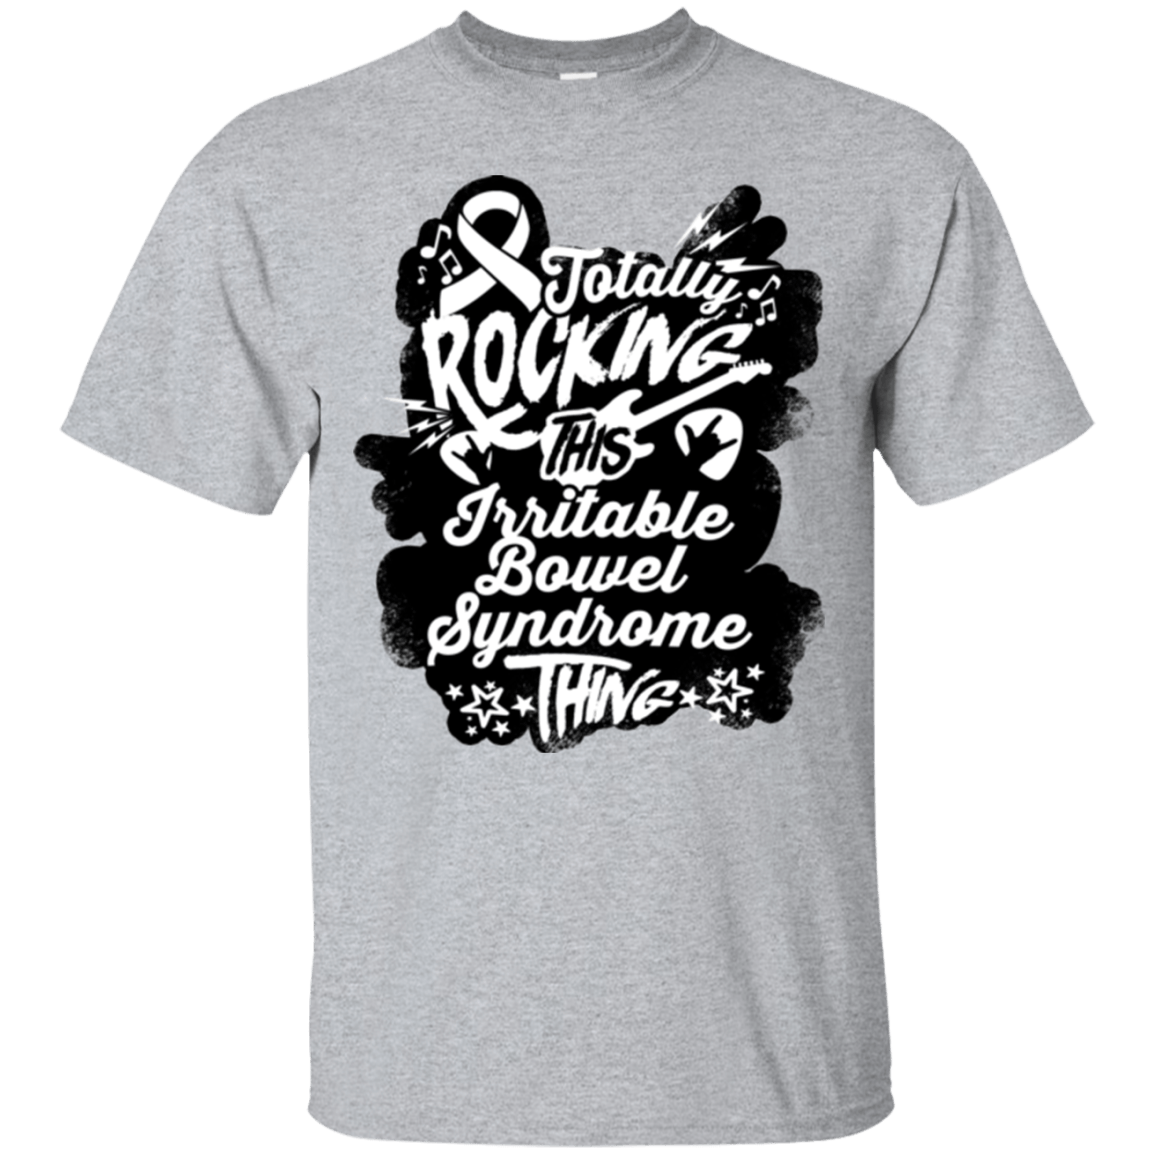 Rocking Irritable Bowel Syndrome Unisex Shirt - The Unchargeables